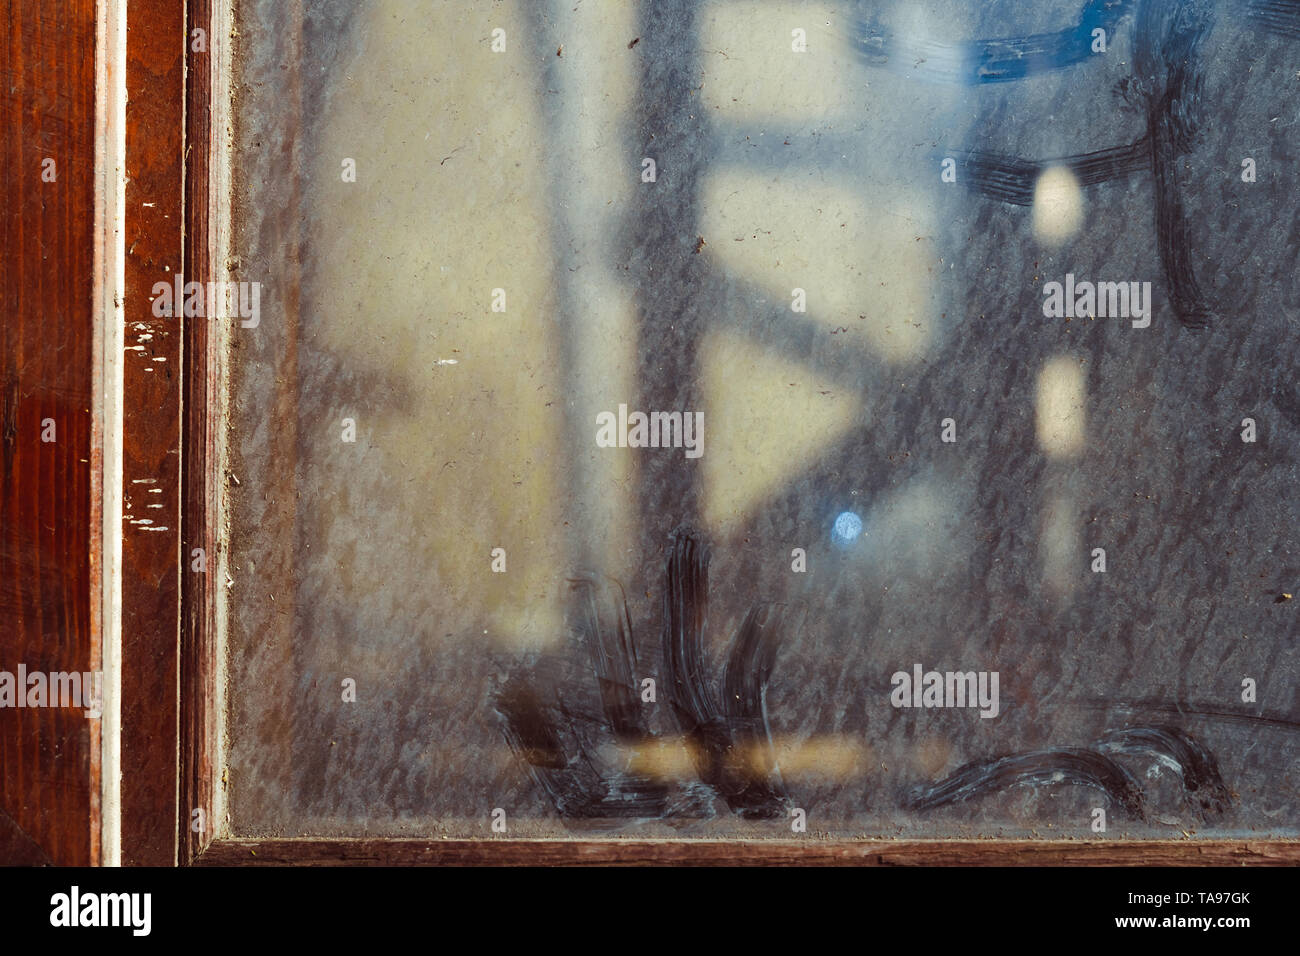 Dusty dirty glass composition as a background texture - Stock Image